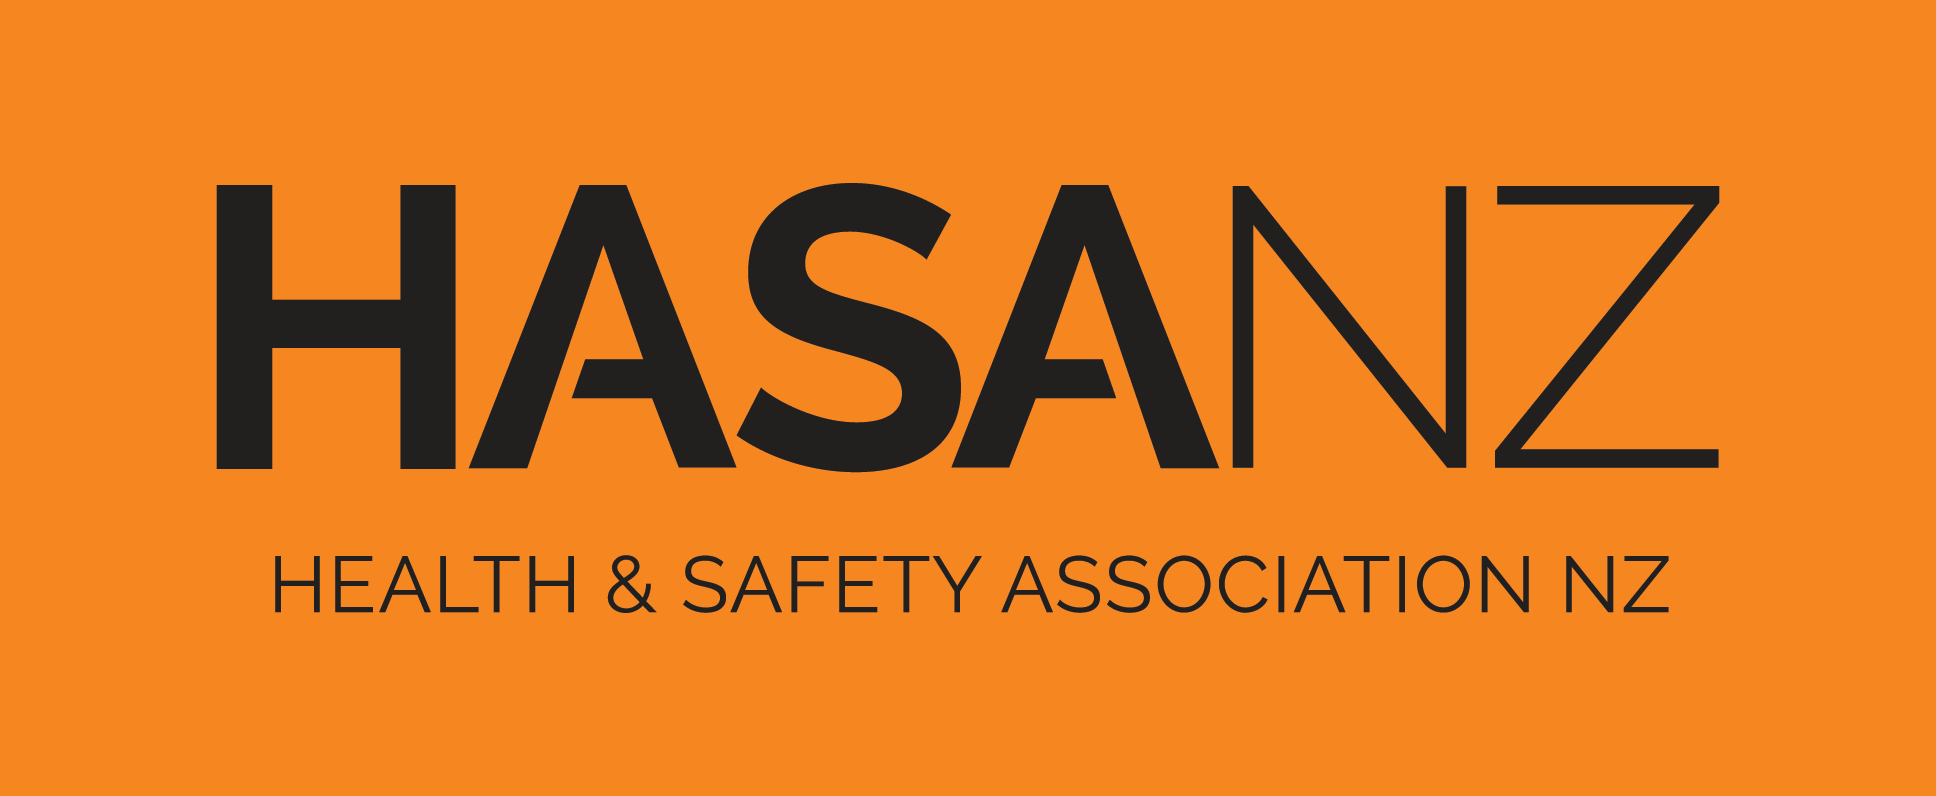 Health and Safety Association of New Zealand (HASANZ)